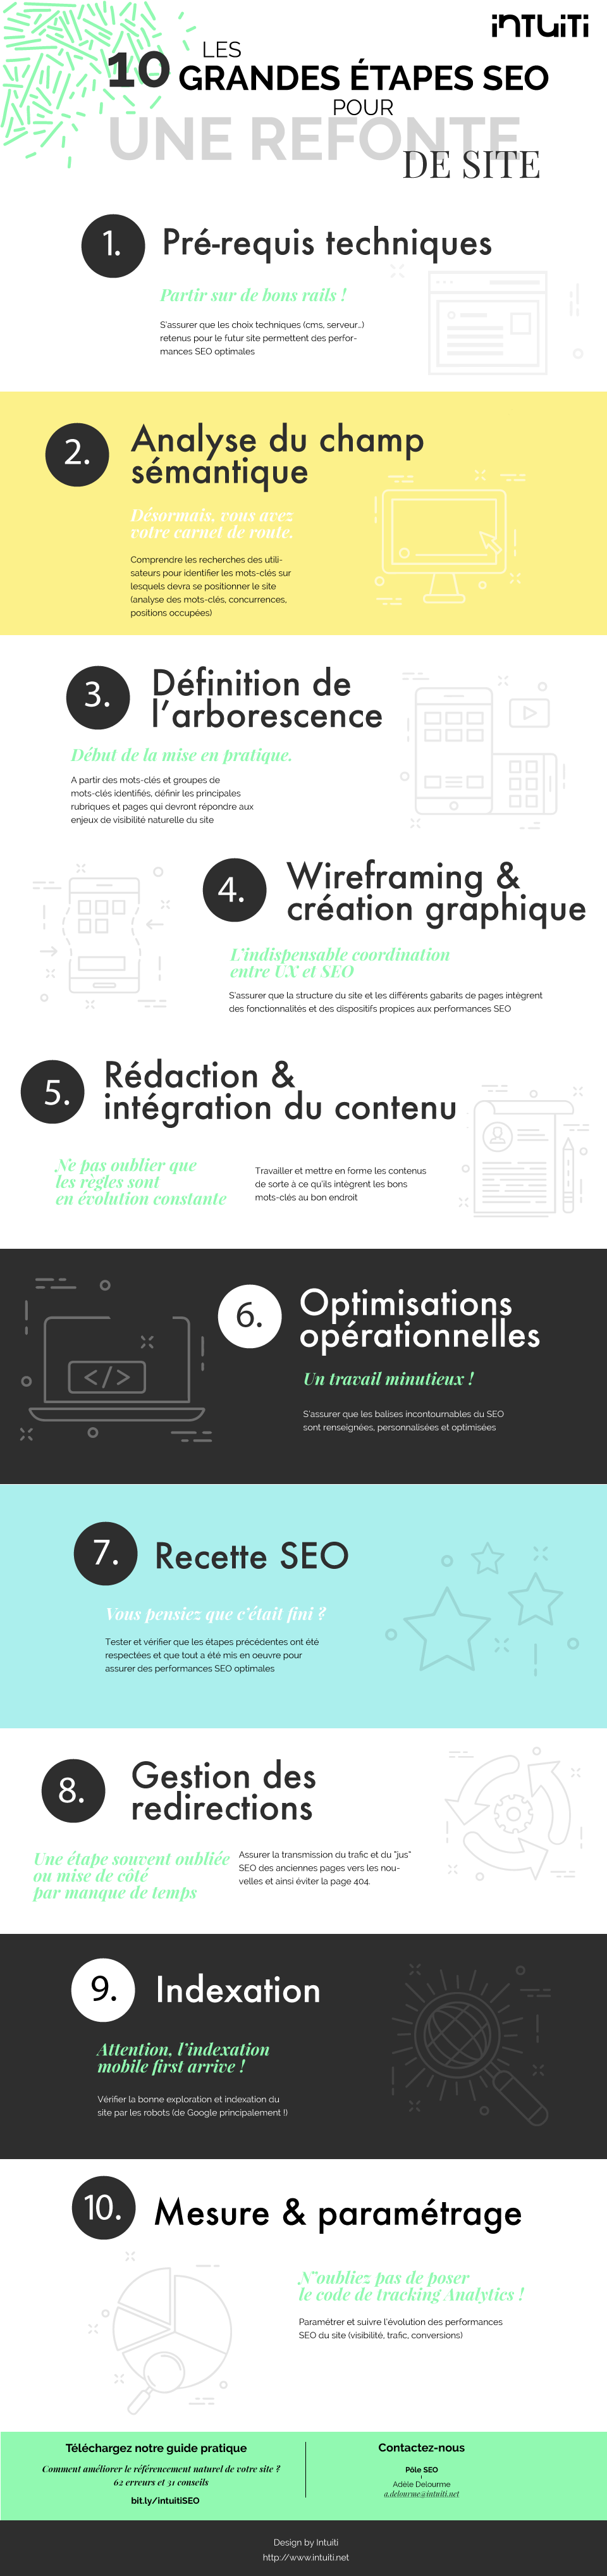 infographie-refonte-web